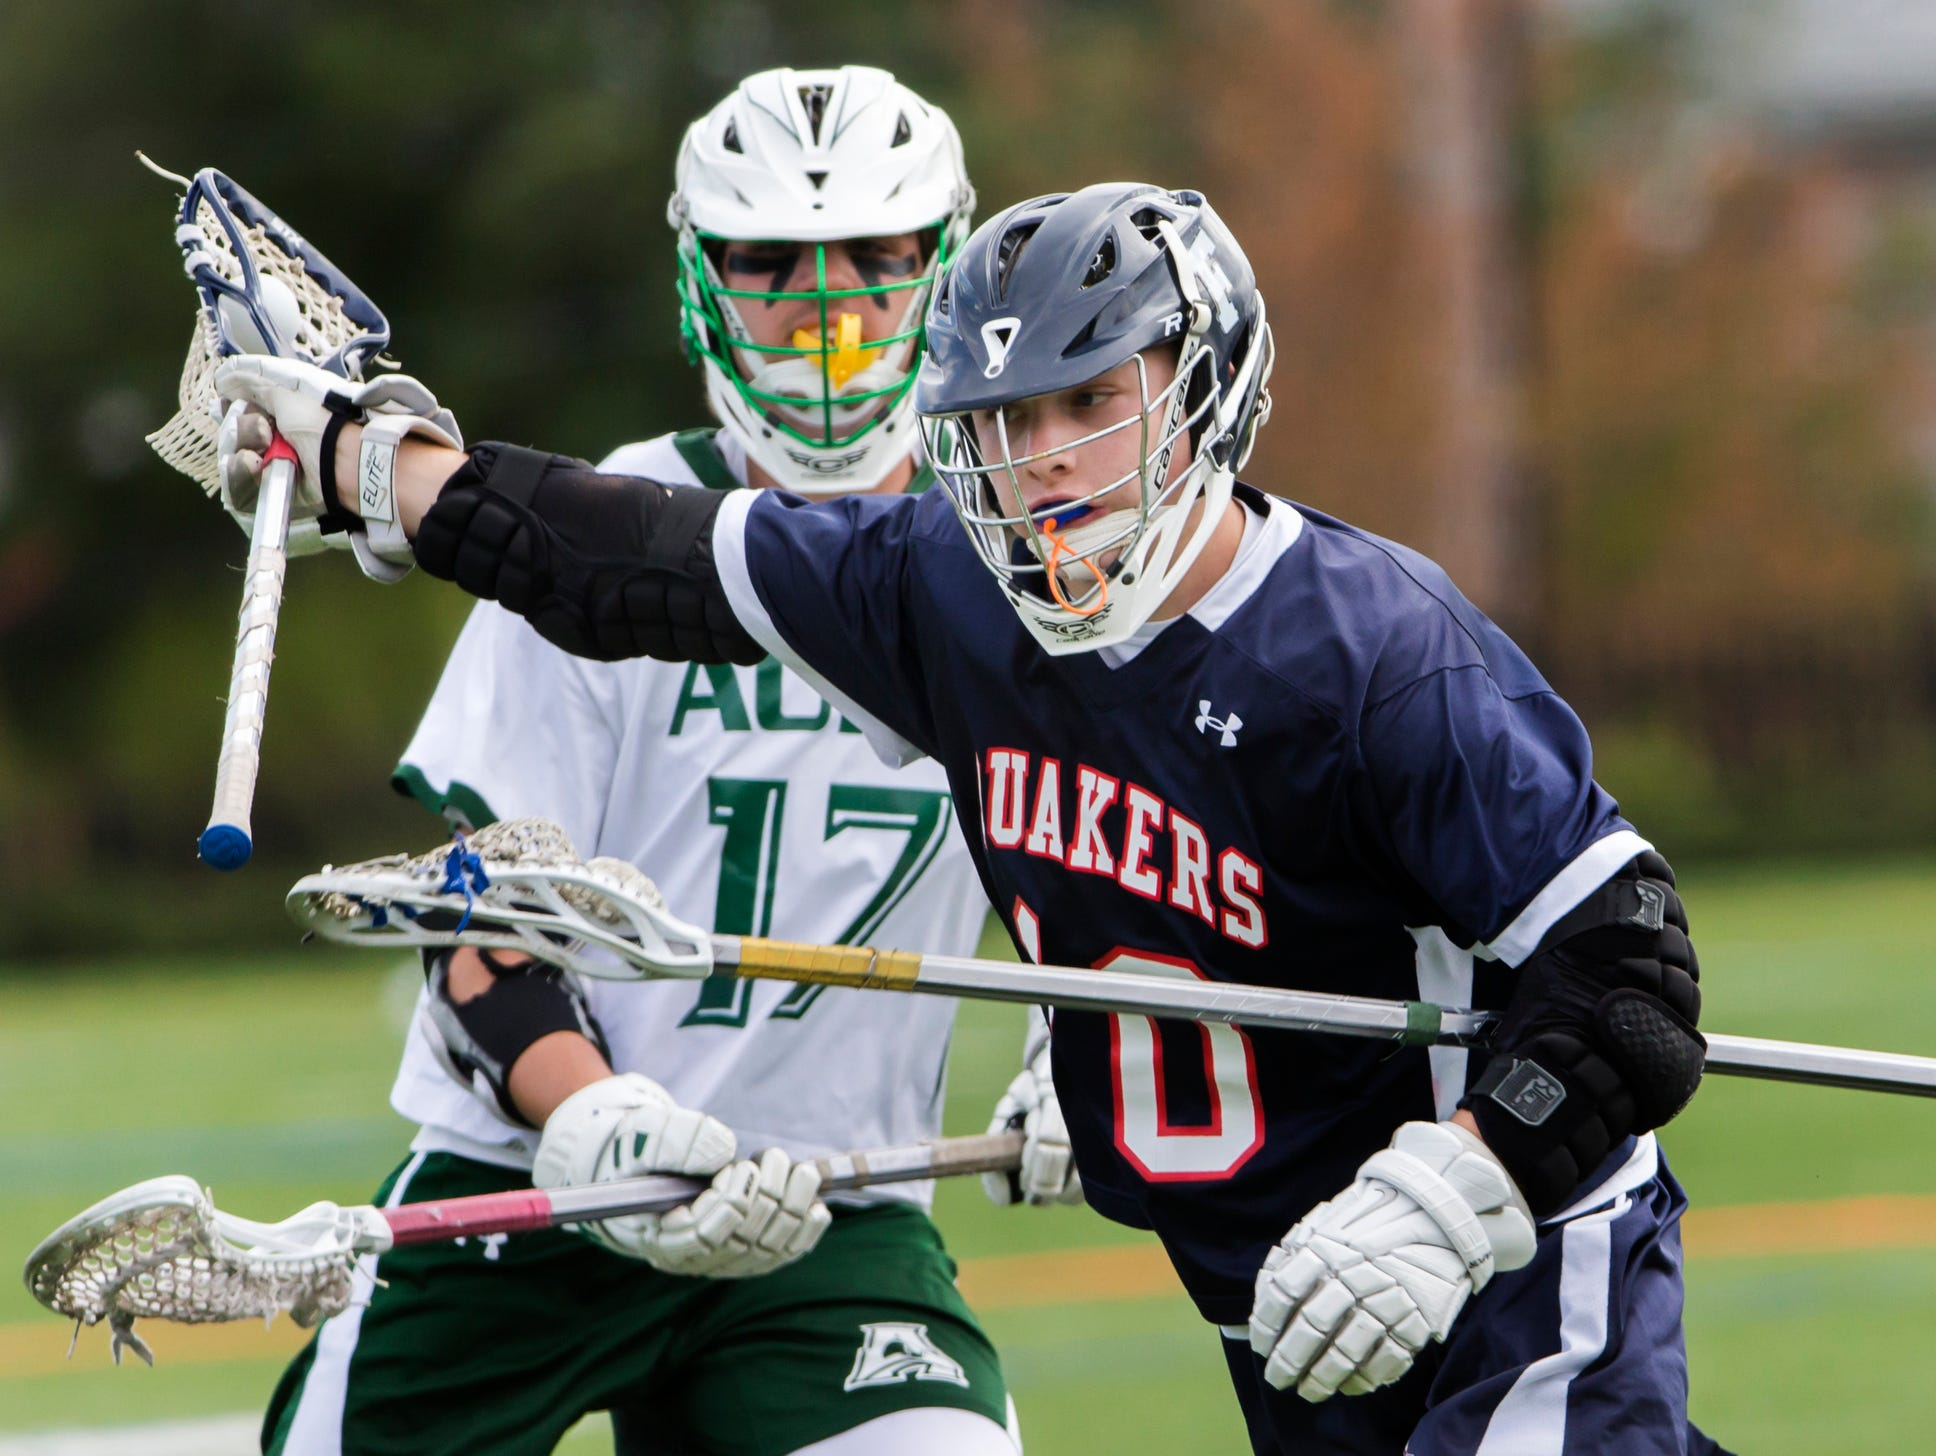 Friends' Eric Pincus cuts toward the goal ahead of Archmere's Jackson Singewald in Archmere Academy's 13-8 win over Wilmington Friends School at Archmere on Thursday afternoon.